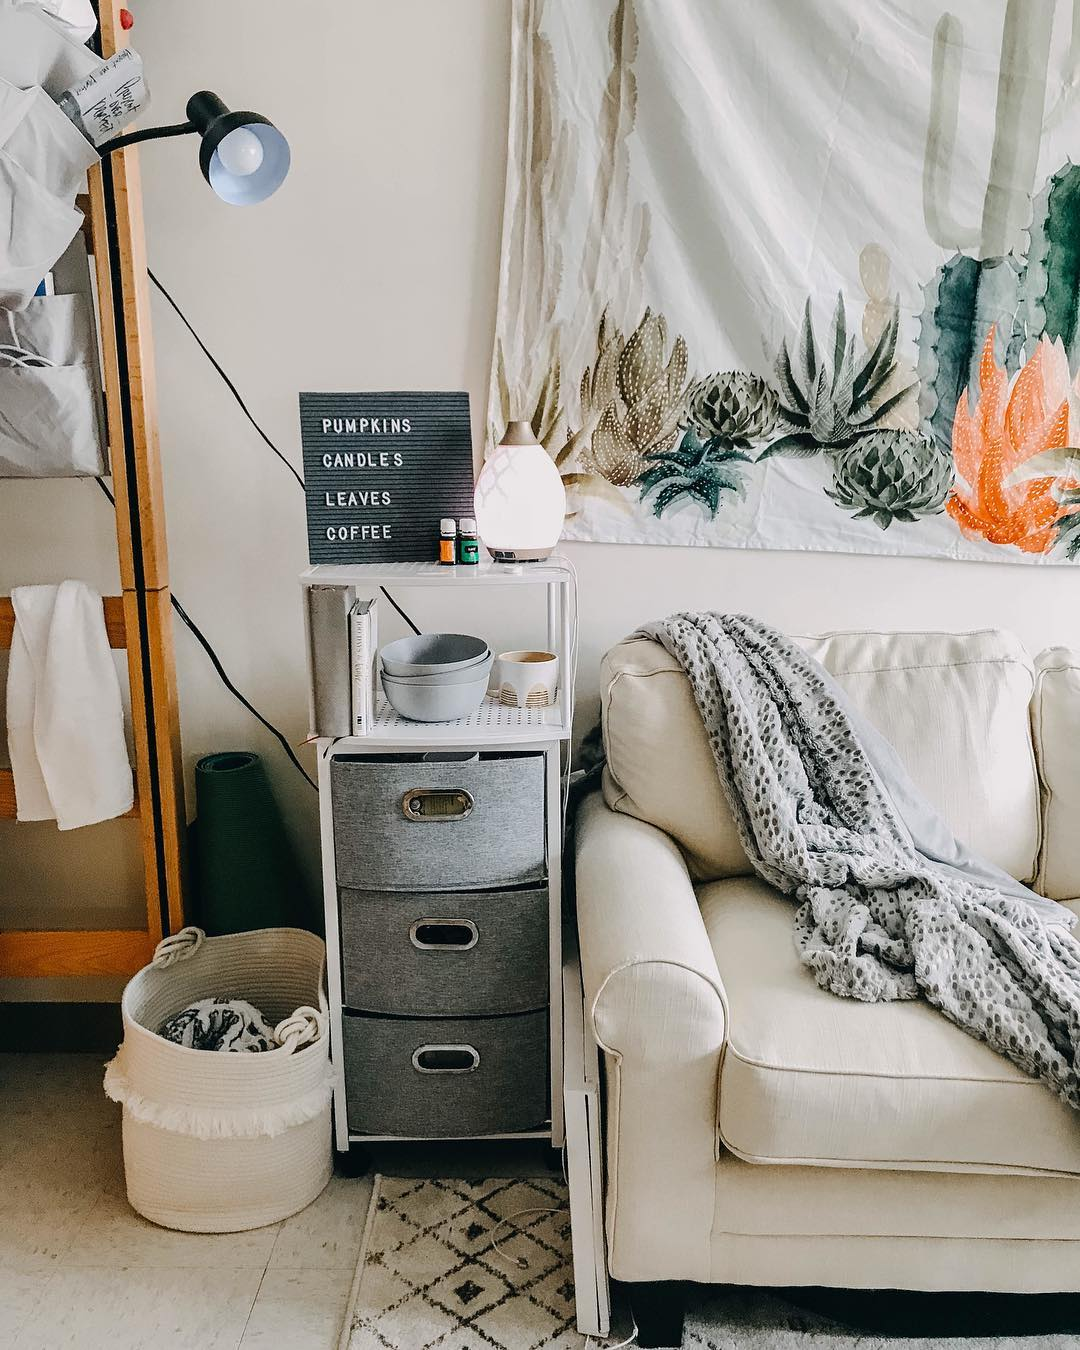 Belmont university dorm room with letterboard & cactus tapestry